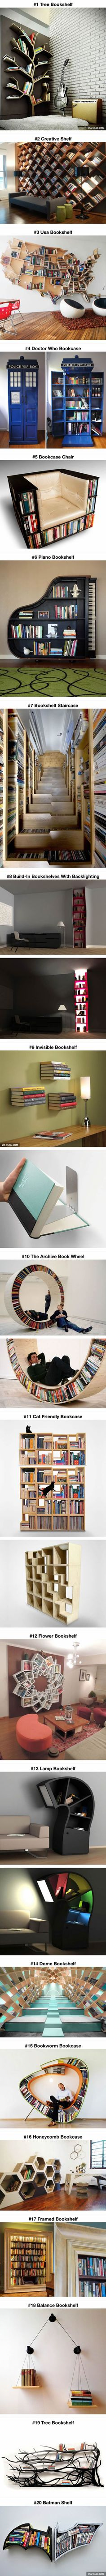 20 Most Creative Bookshelves Ever <<< That dome bookshelf is the most futuristic I have ever seen! So cool!